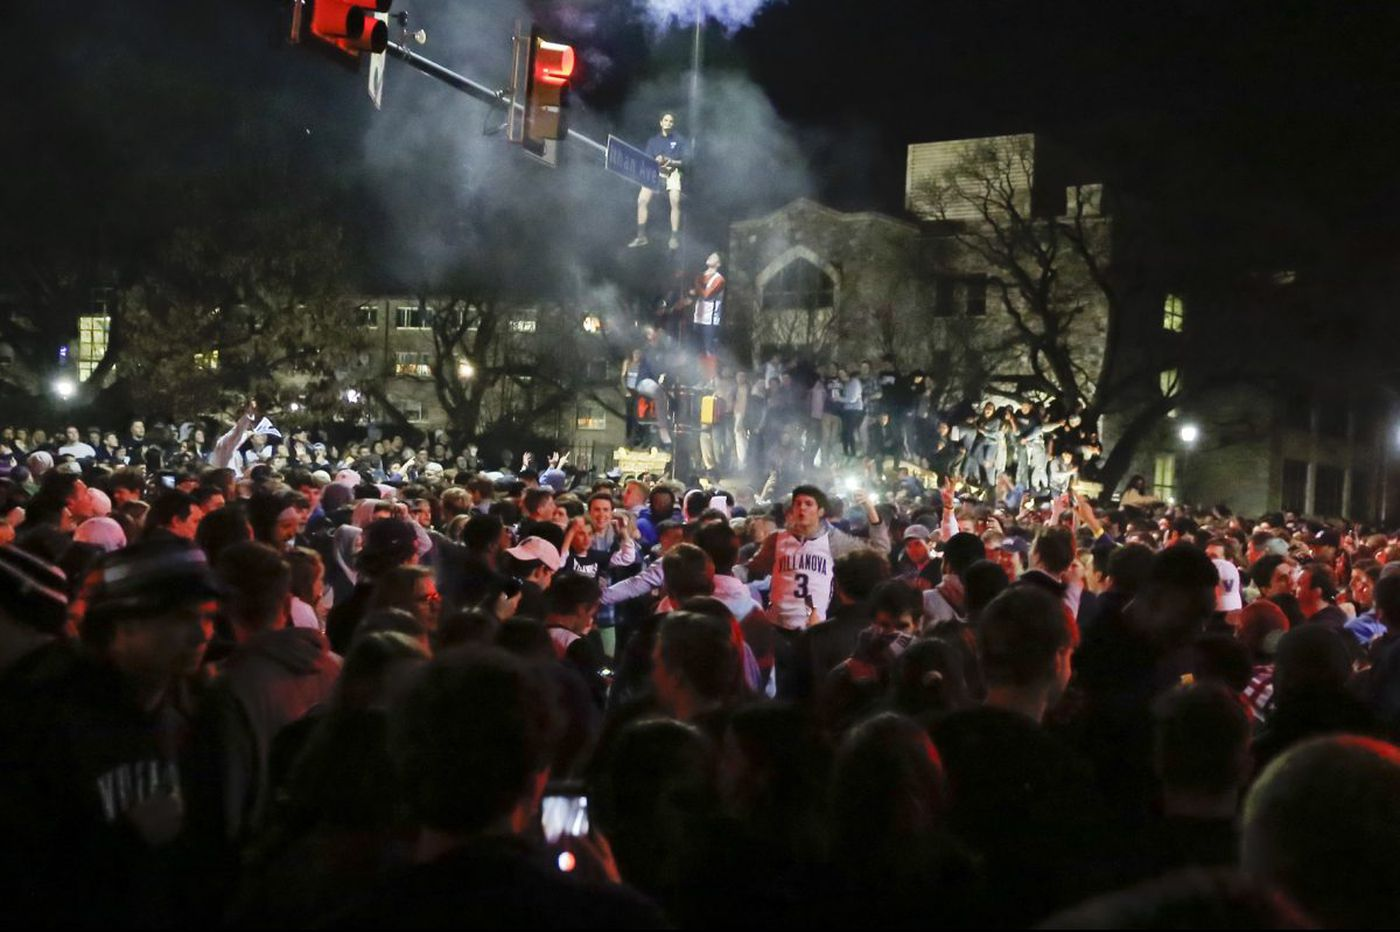 With another NCAA basketball championship, Villanova fans let loose